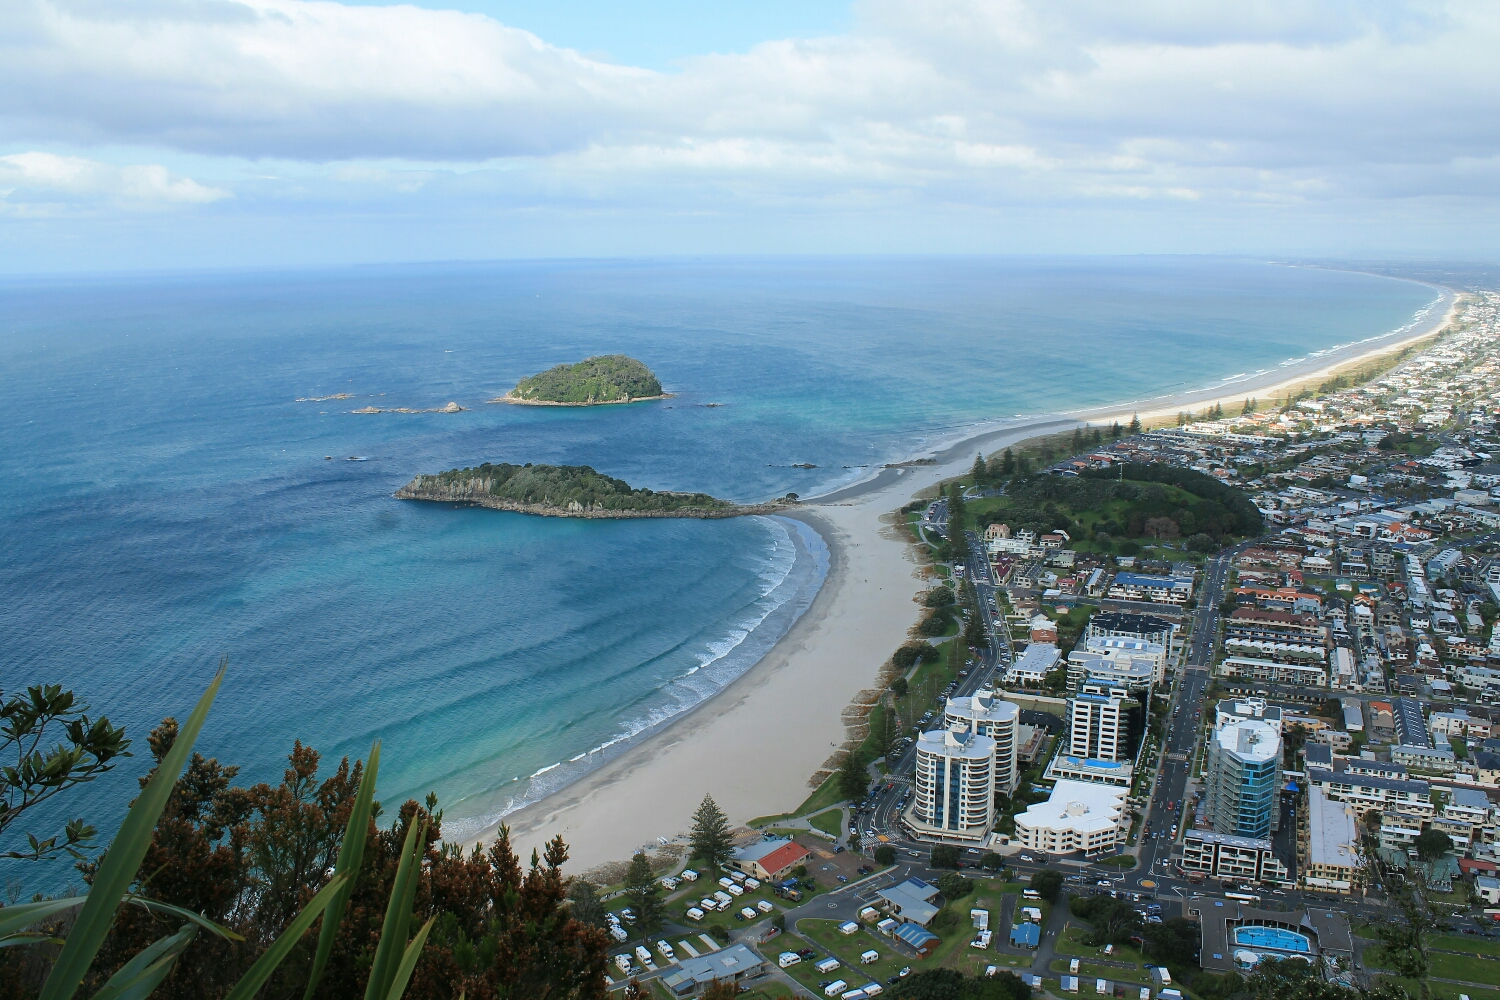 View from the summit of Mt. Maunganui